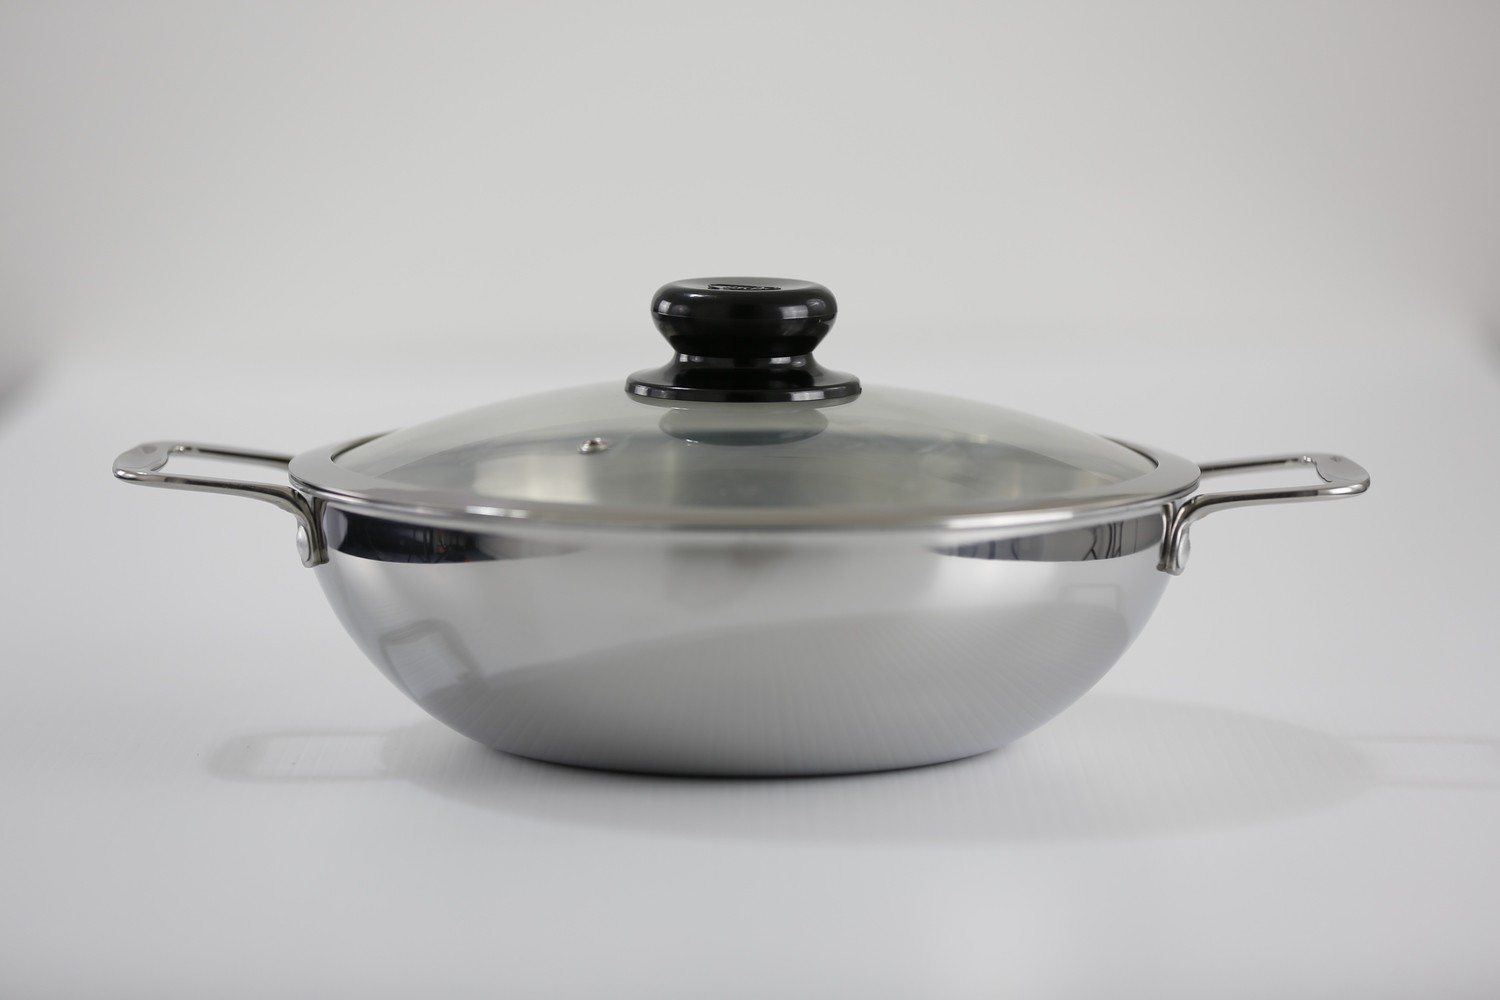 Tri-Ply Clad 12.5 inch Stainless Steel Wok With Glass Cover